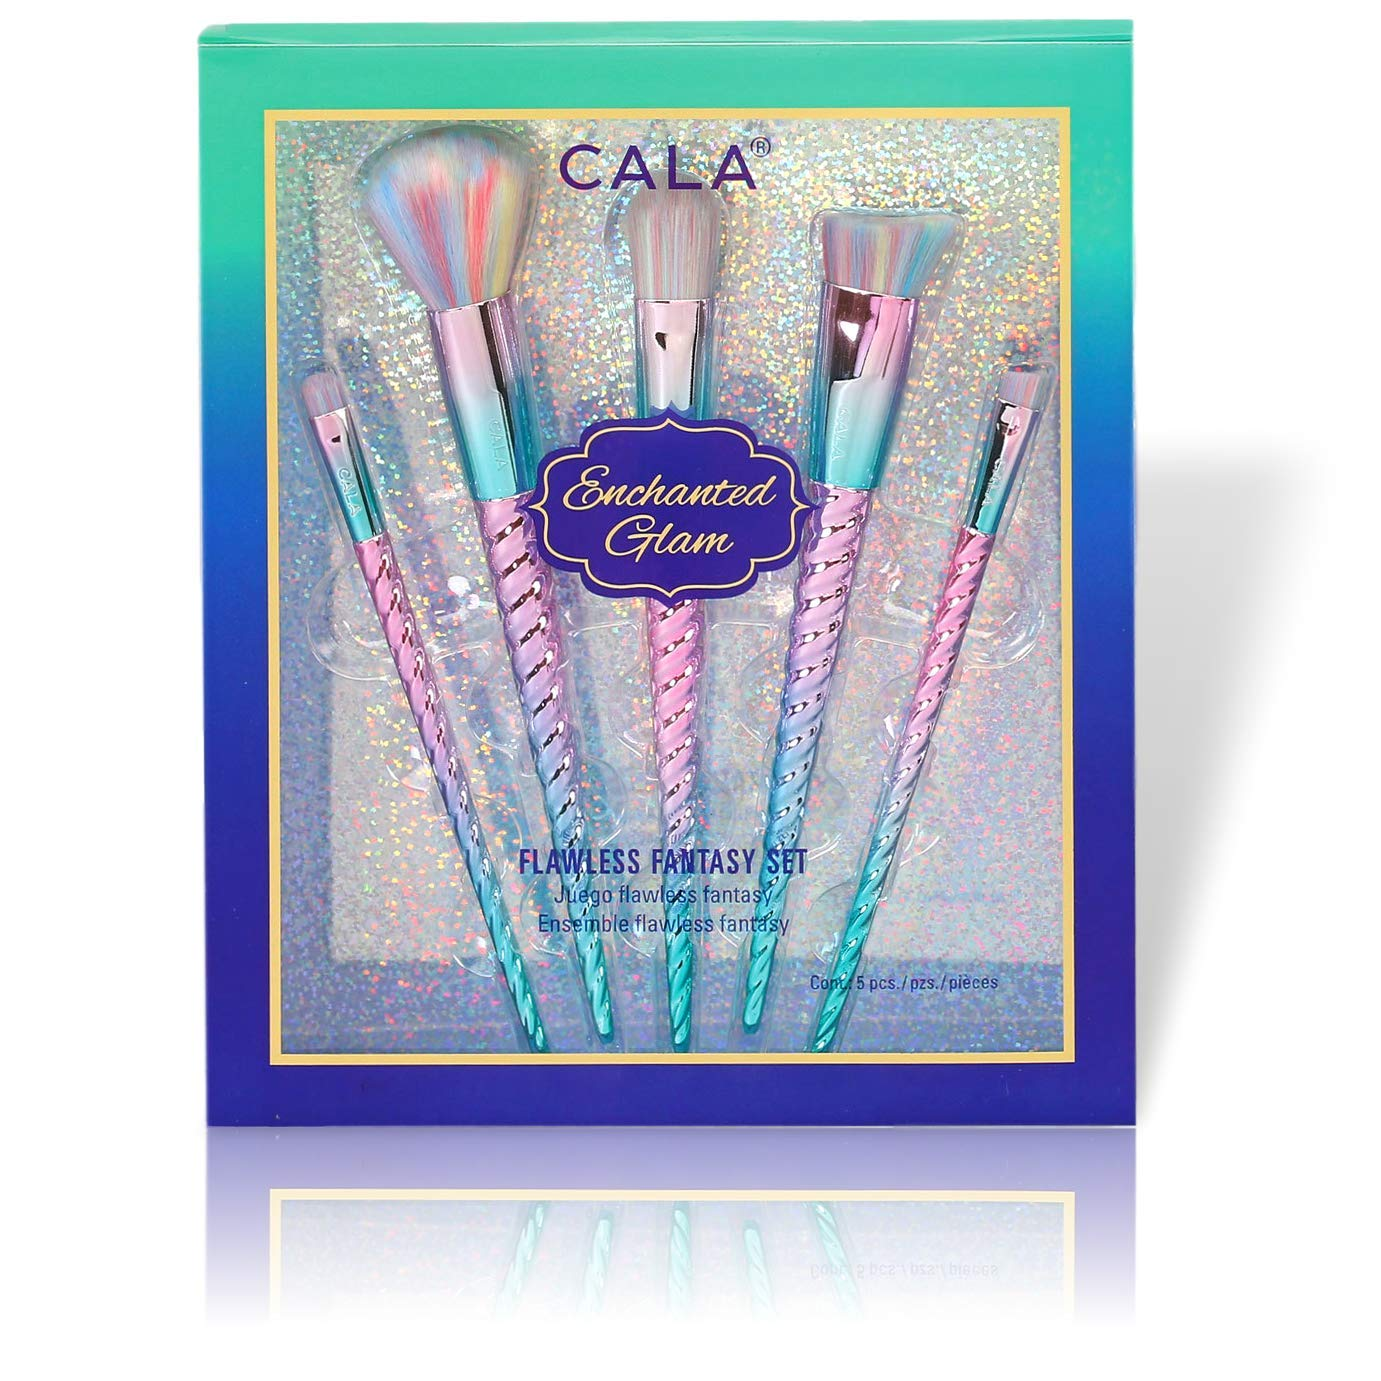 Premium Makeup Brush Set with Colorful Mermaid Design For Foundation, Eyeshadow, Blending & More